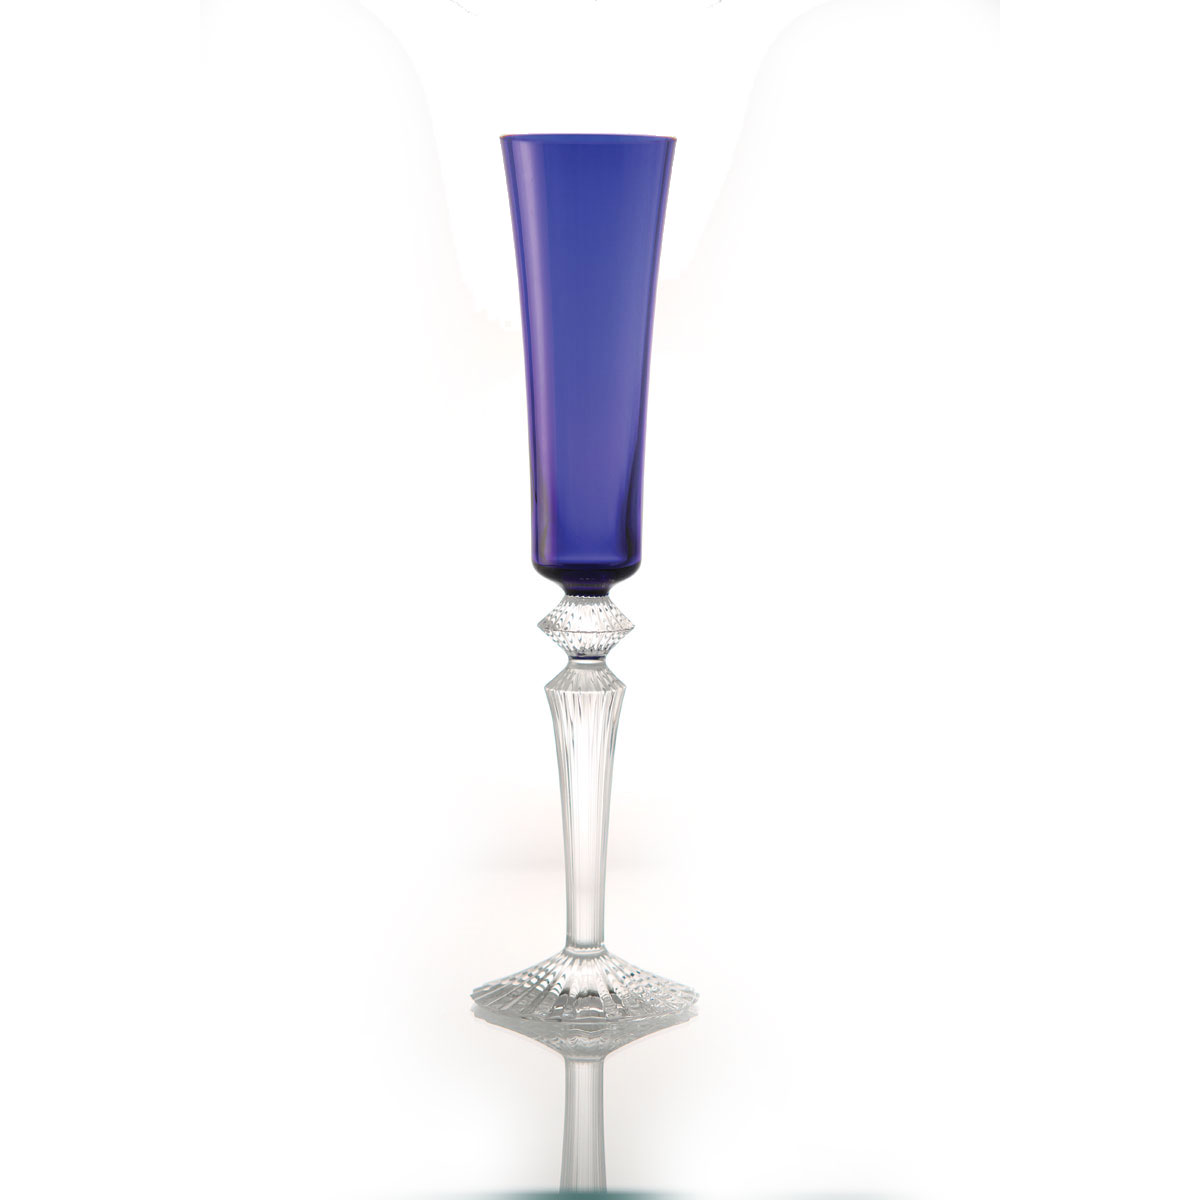 Baccarat Crystal Mille Nuits Flutissimo Sapphire Flute, Single